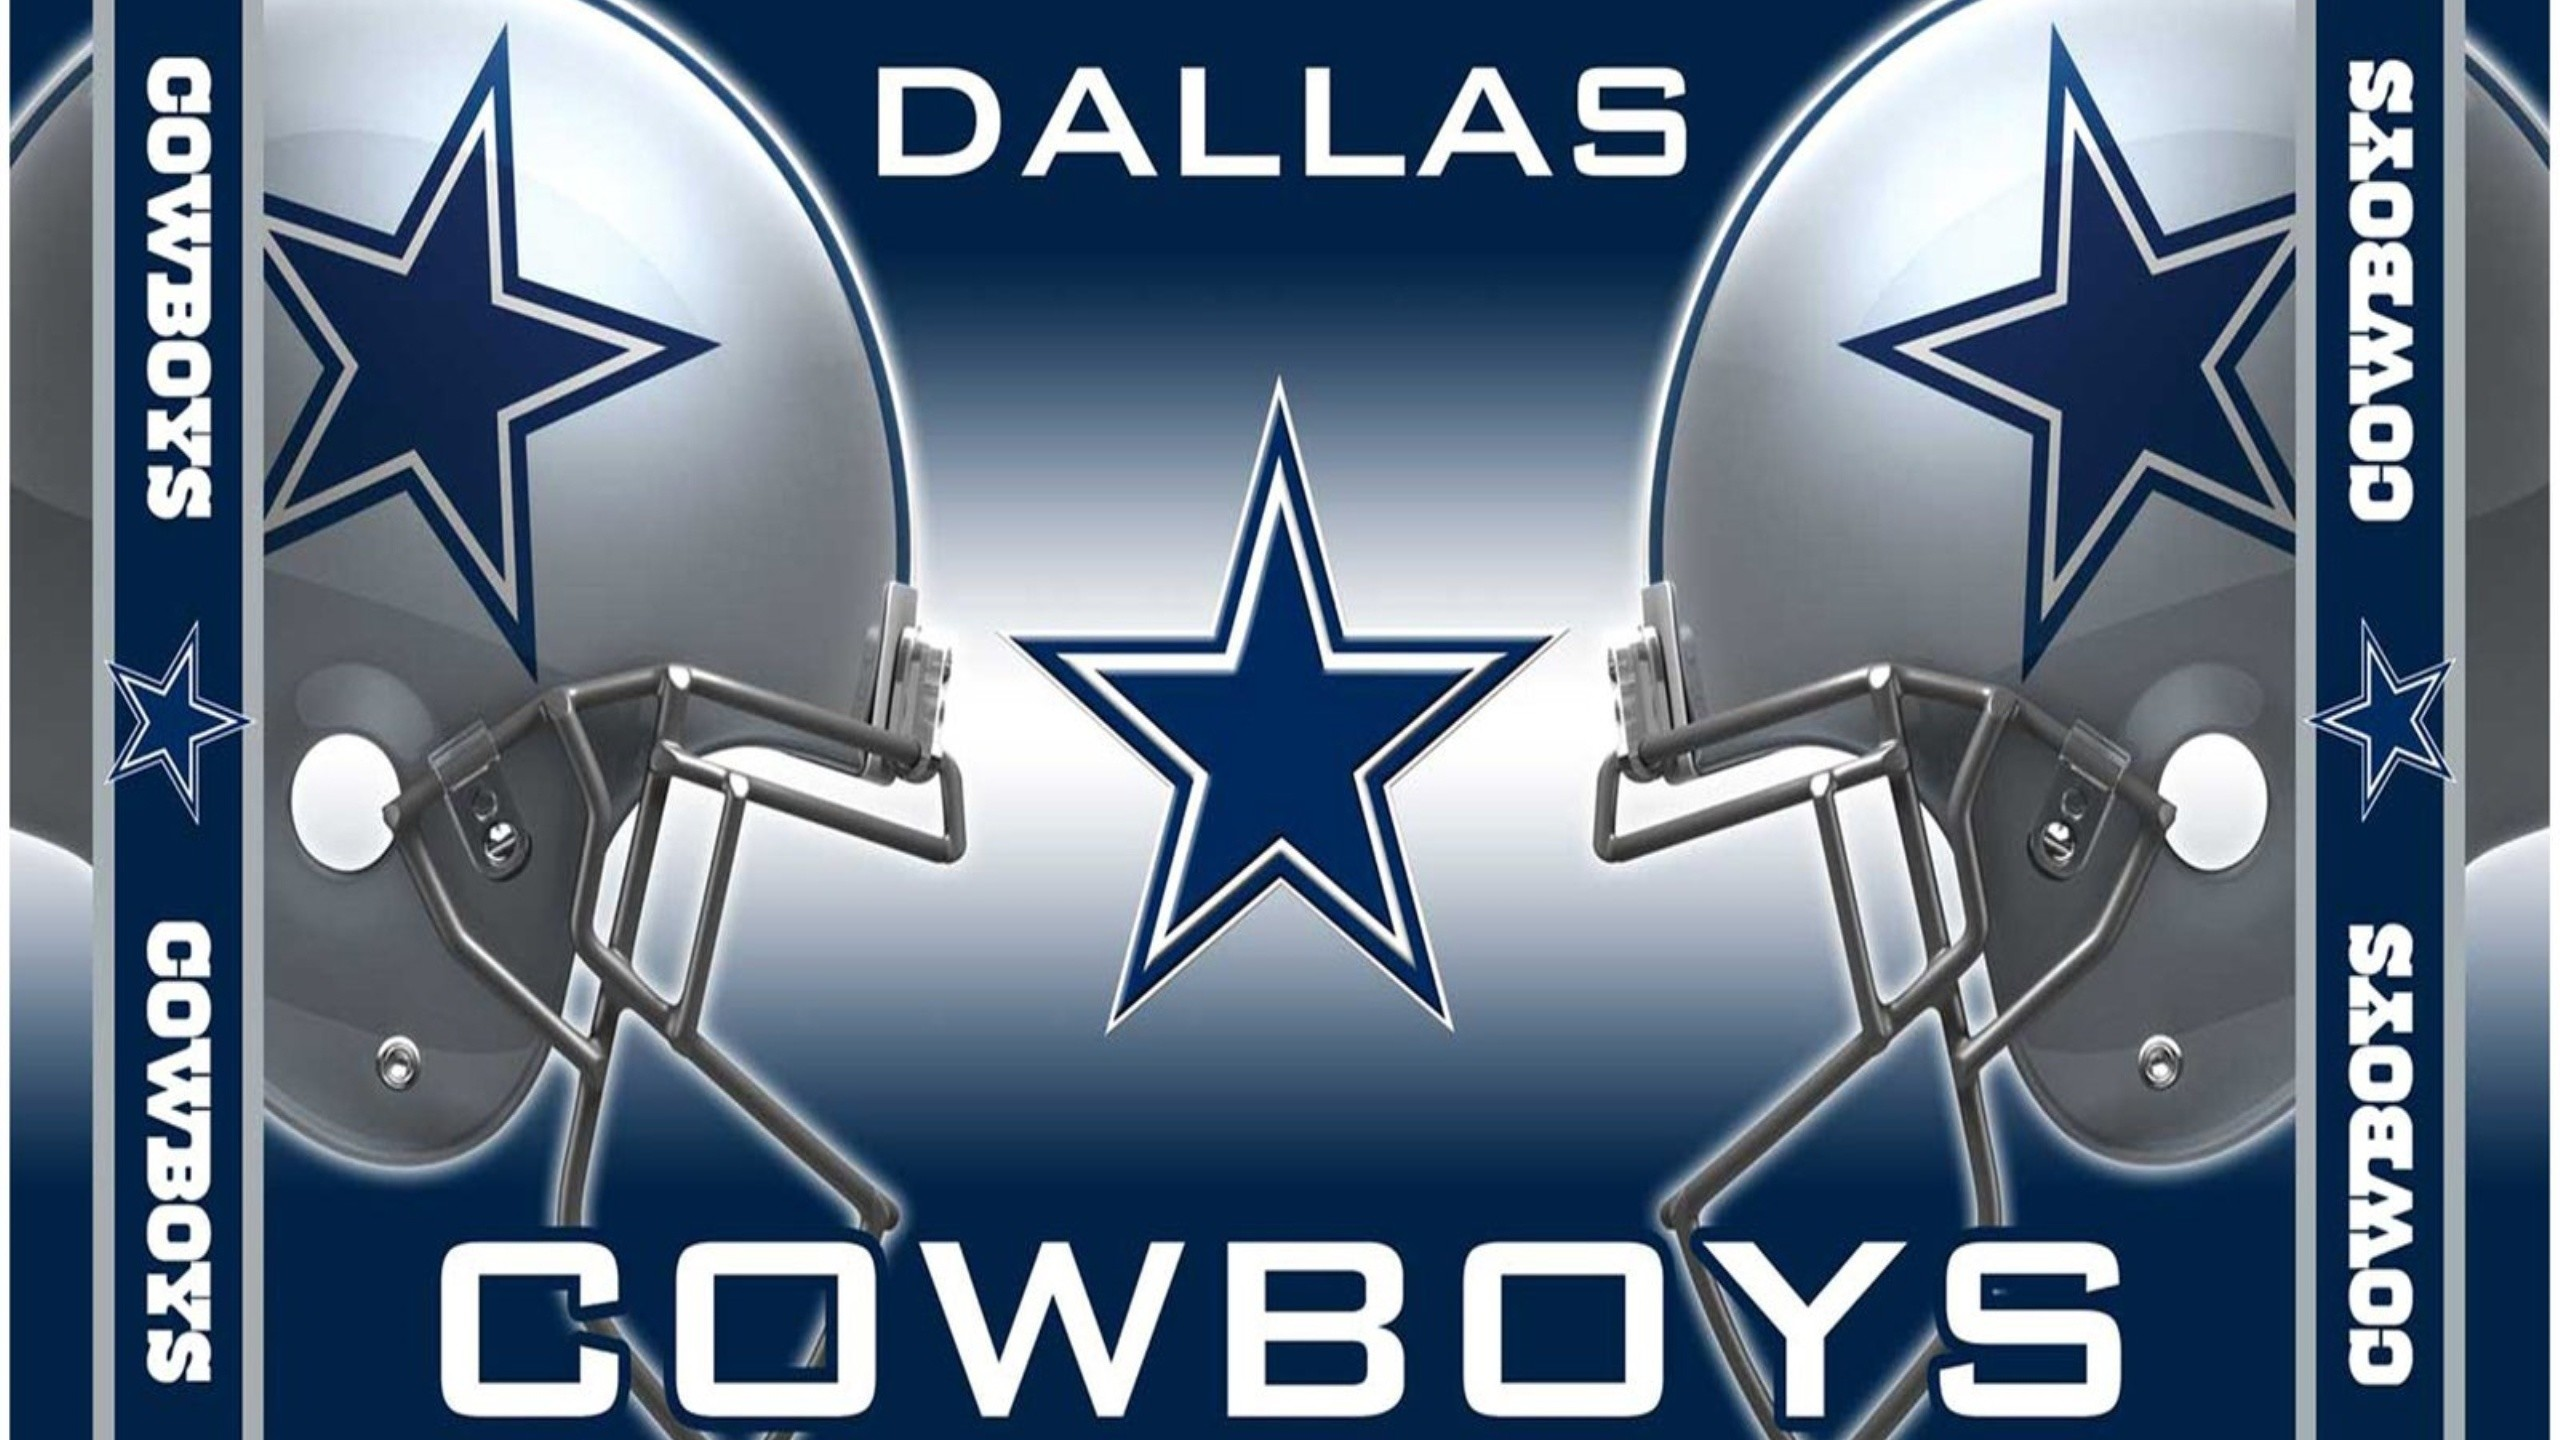 Dallas Cowboys Backgrounds For Desktop Wallpapertag